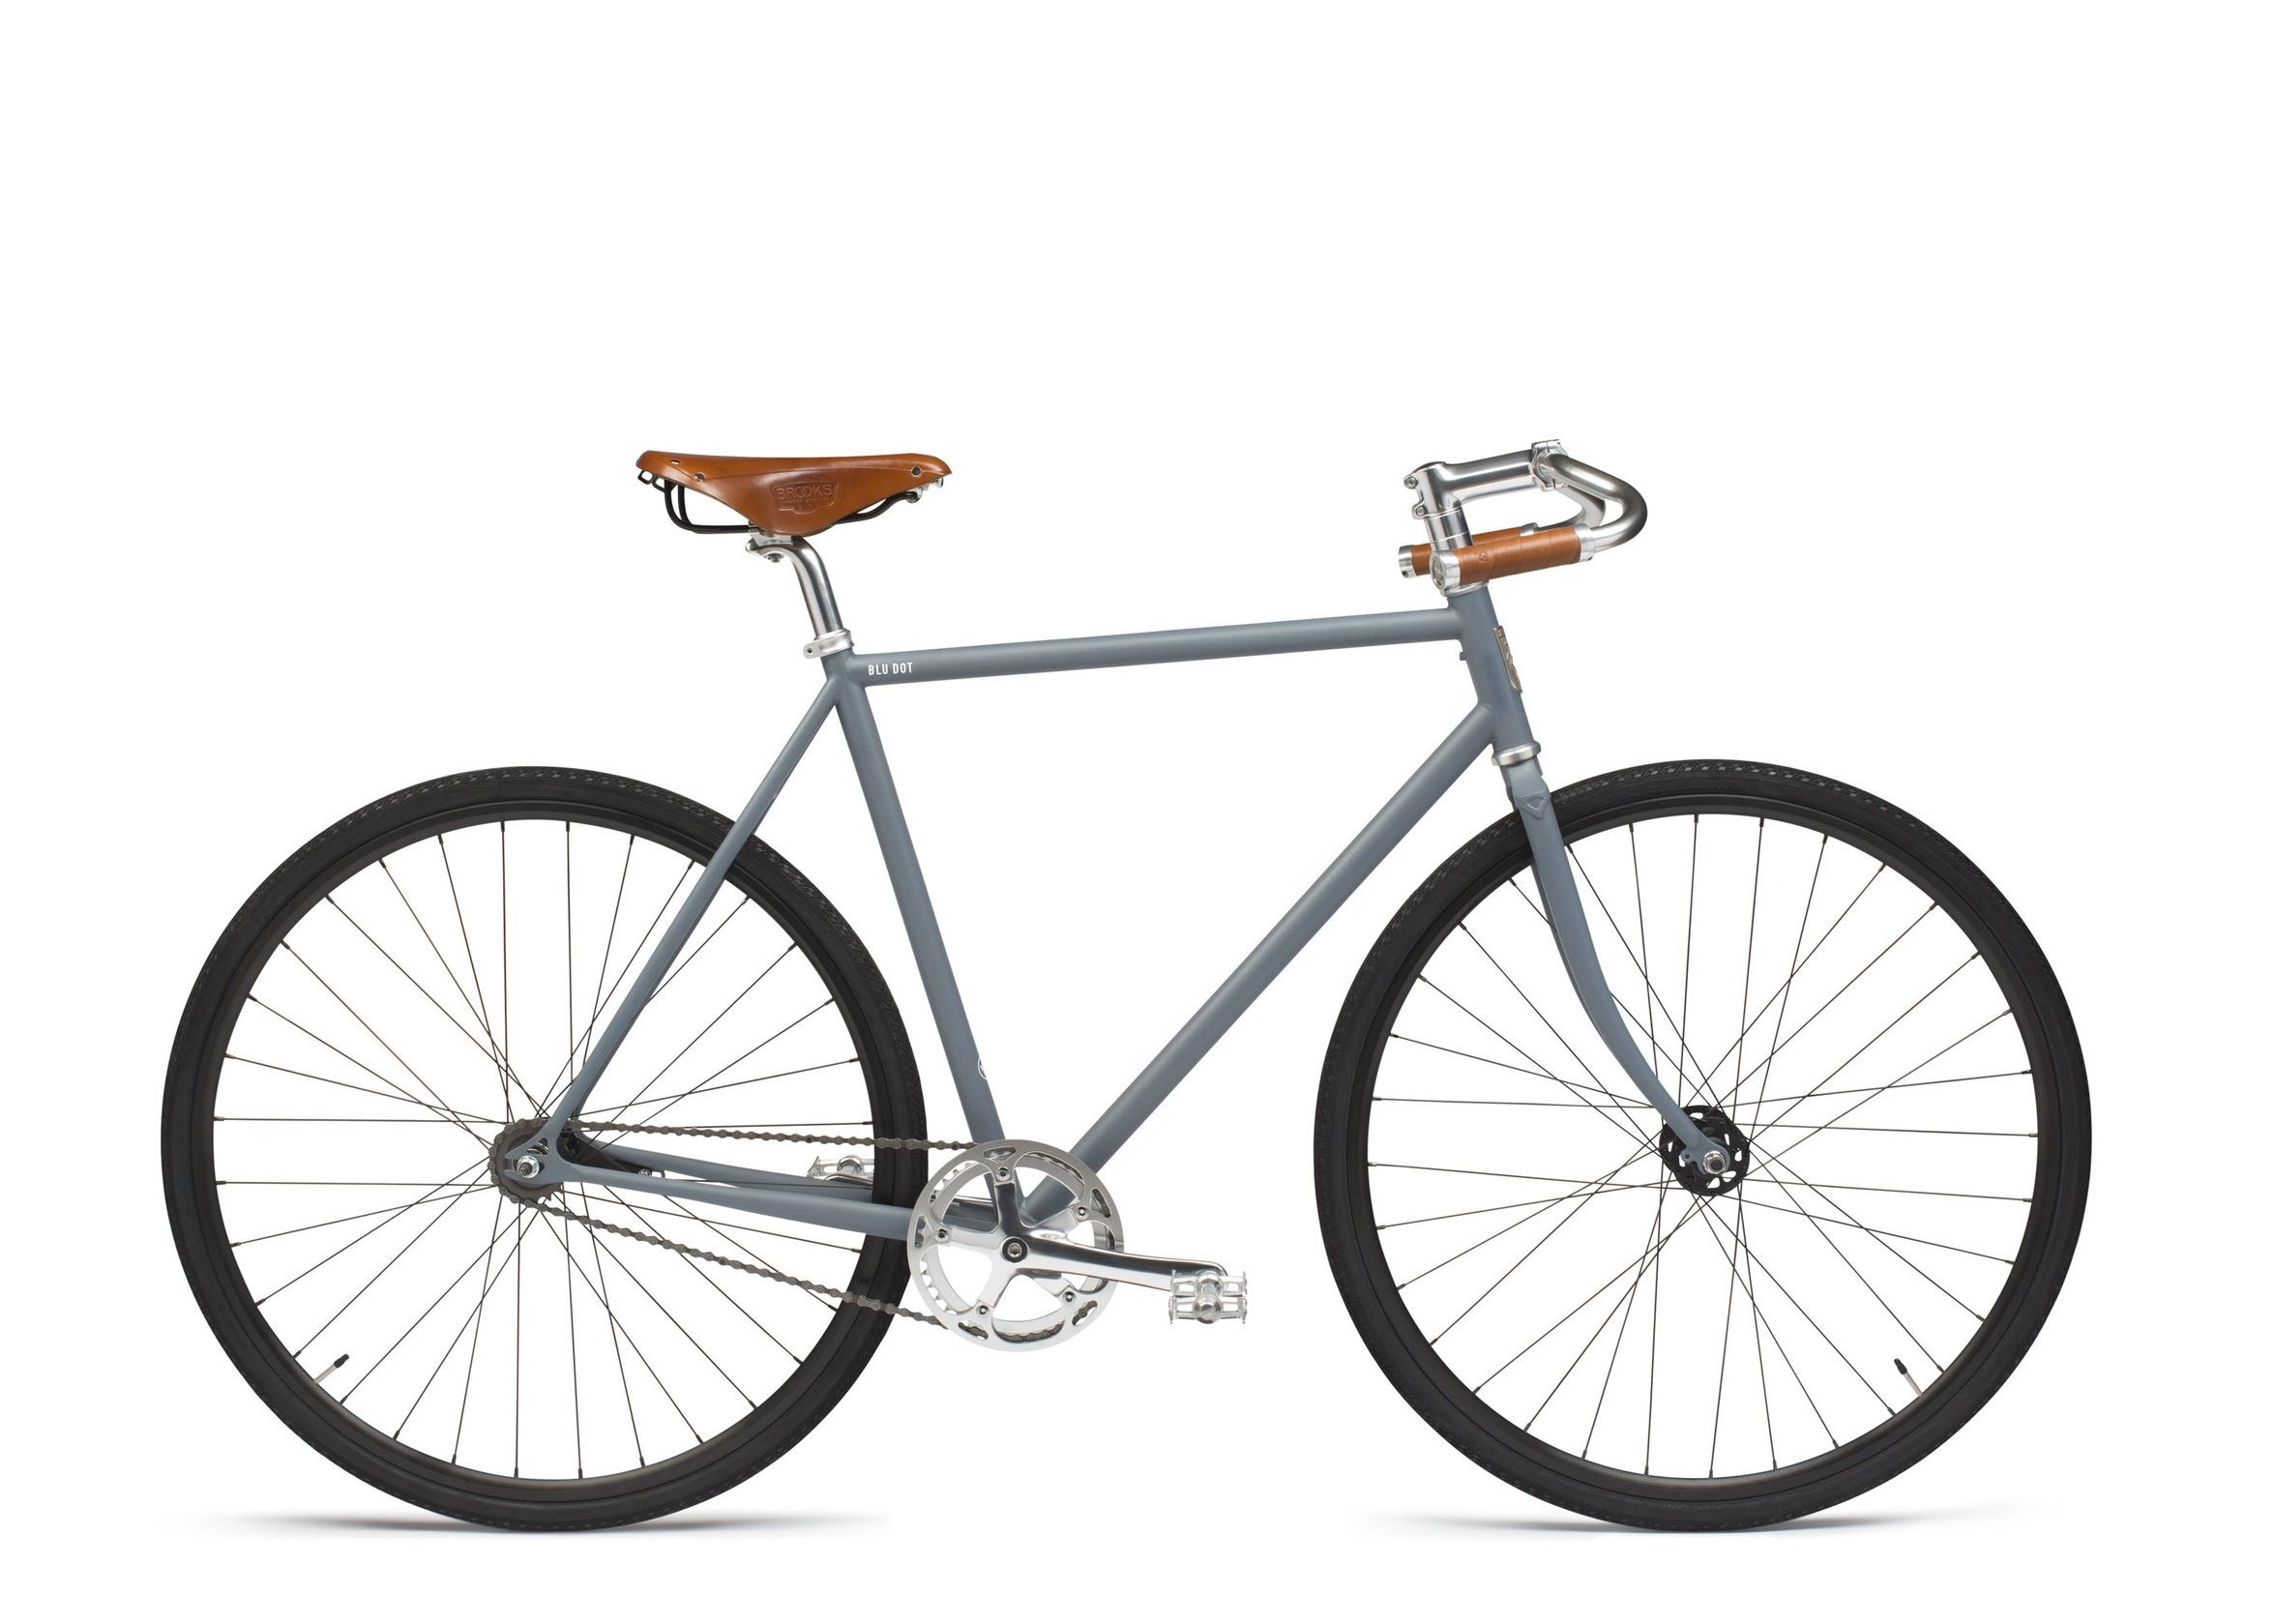 bludot_x_handsome_bike_1926.jpg